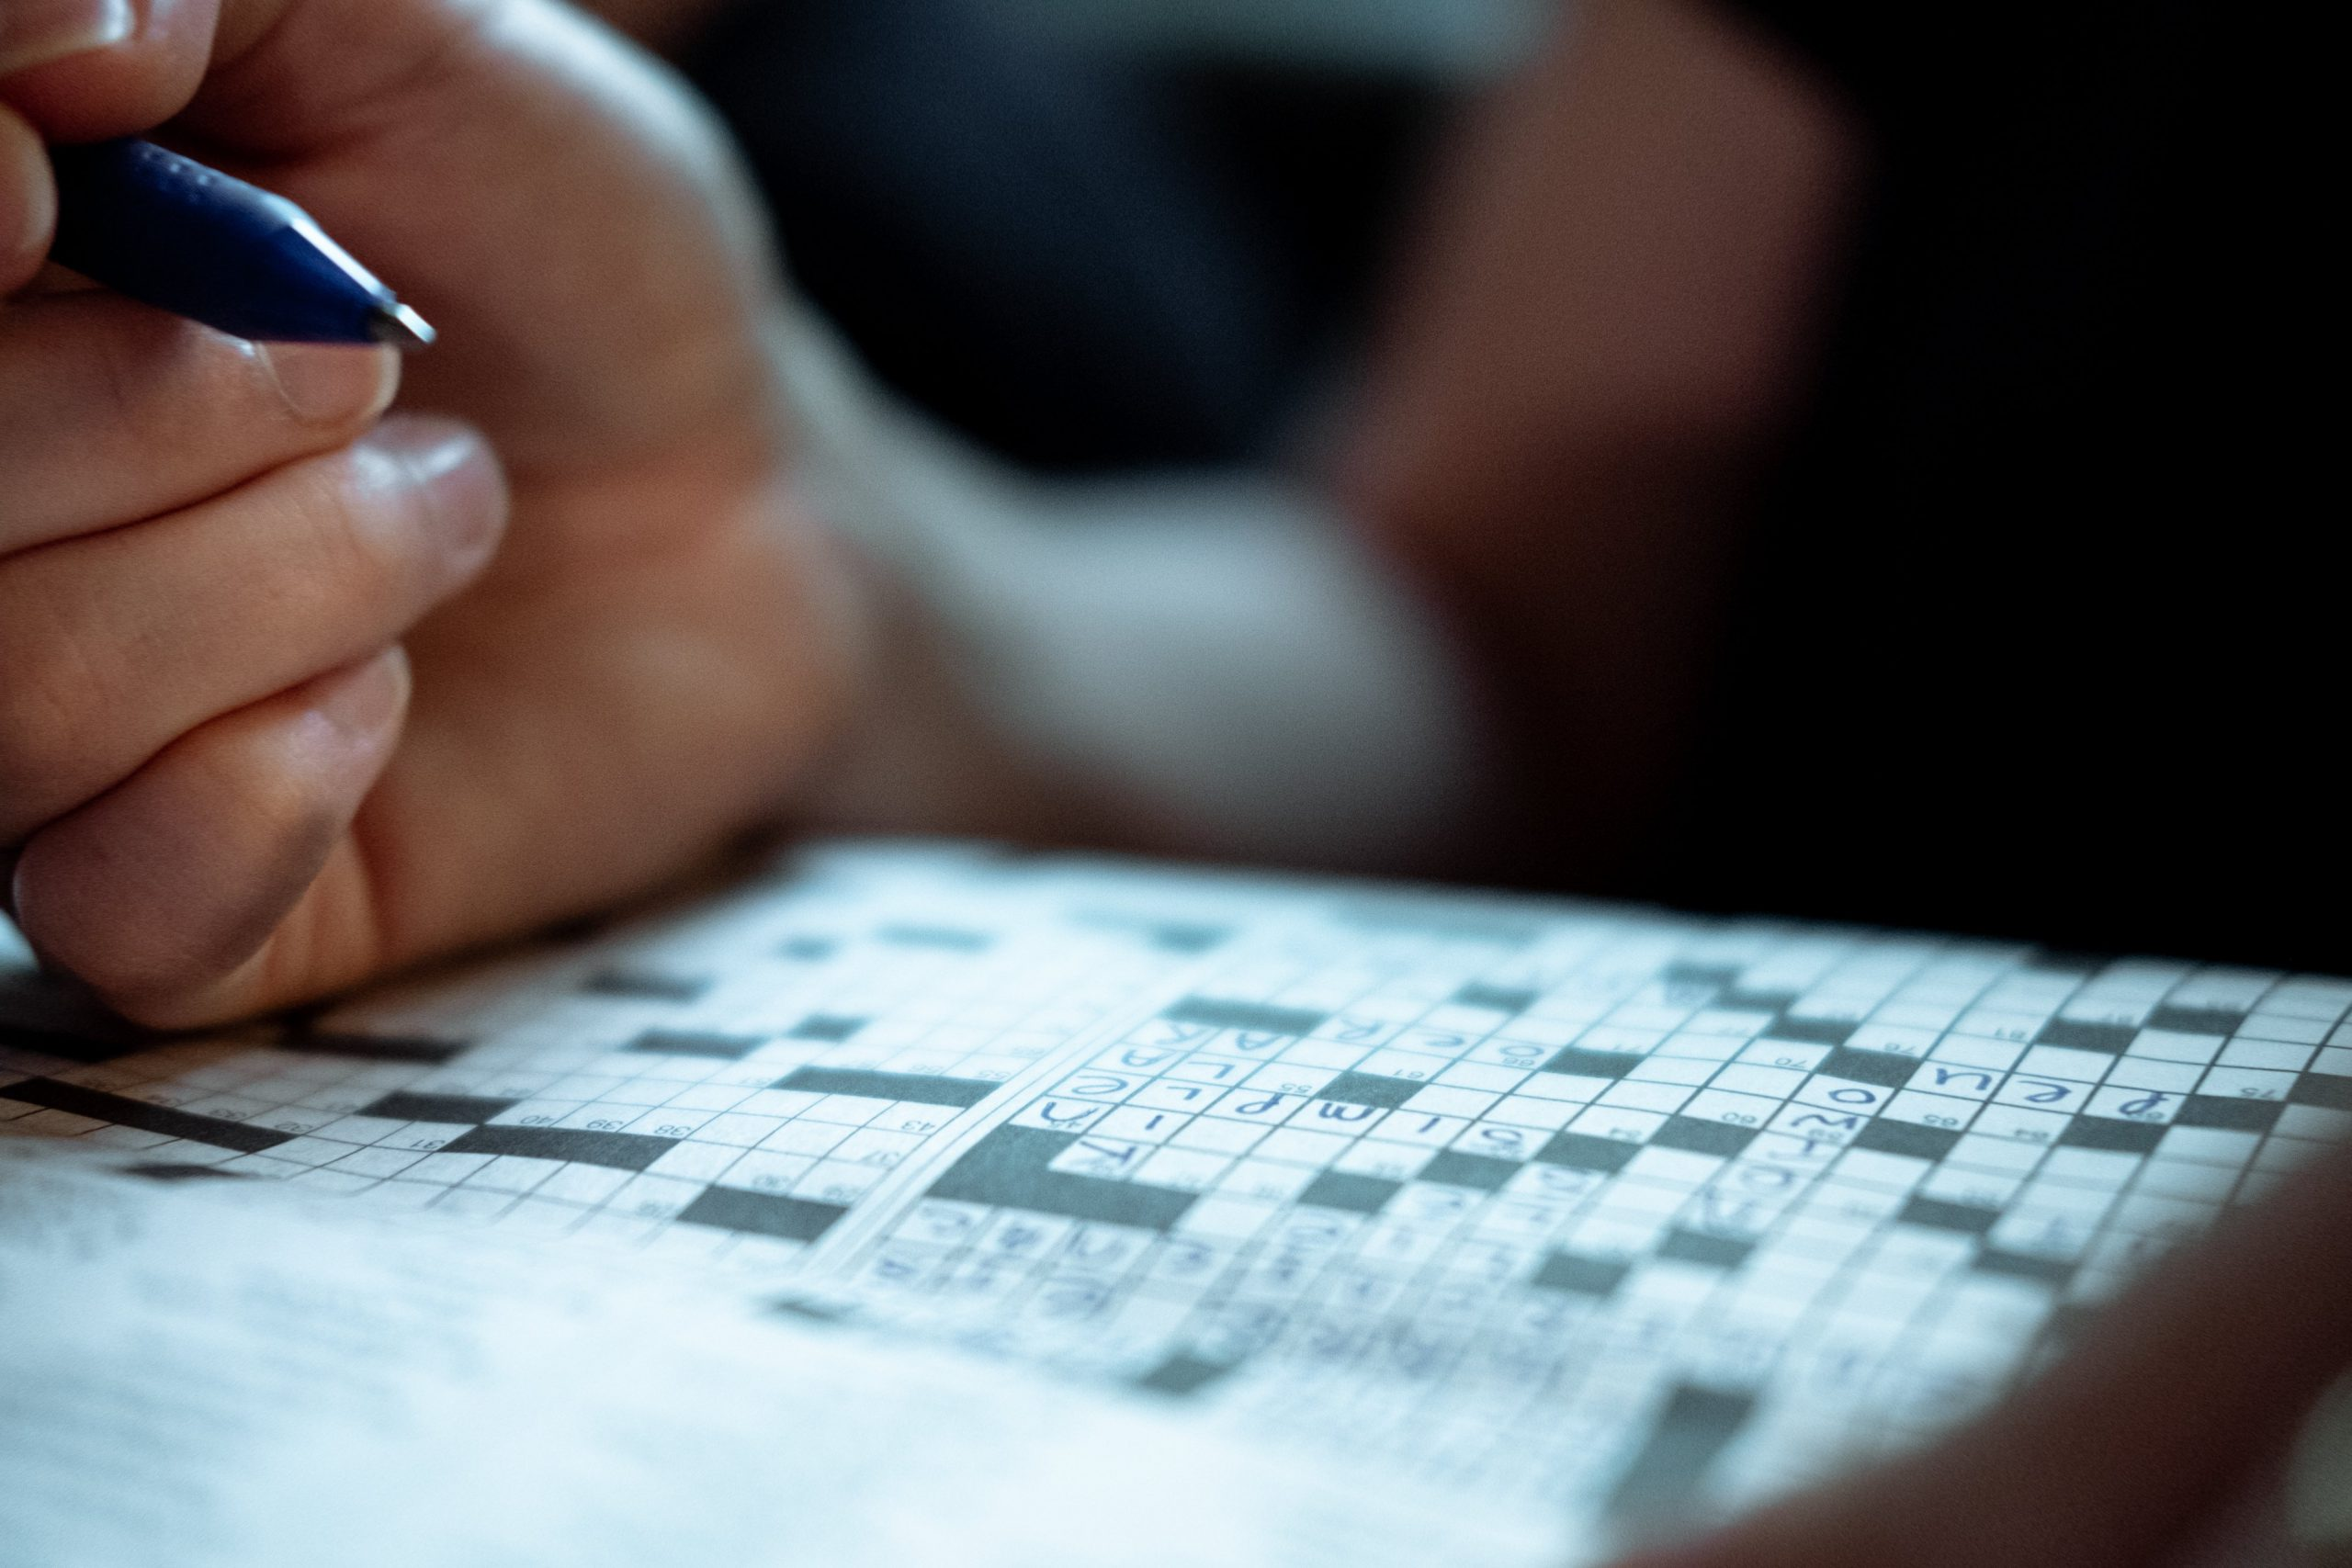 tenantcloud vs zillow working out crossword puzzle